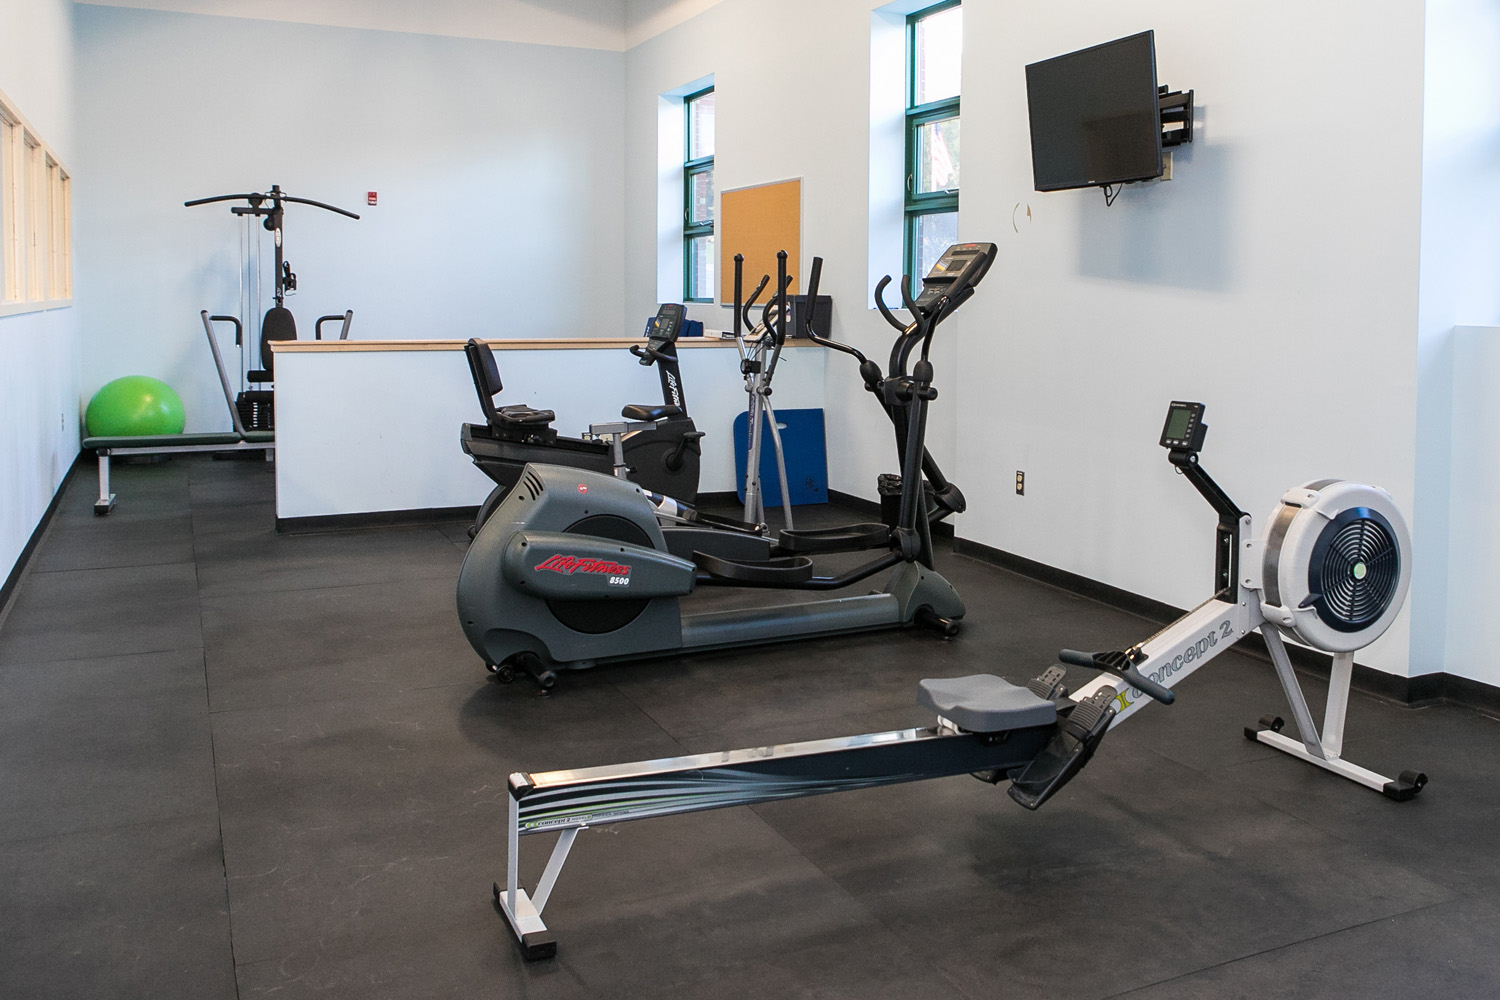 Gym and exercise room